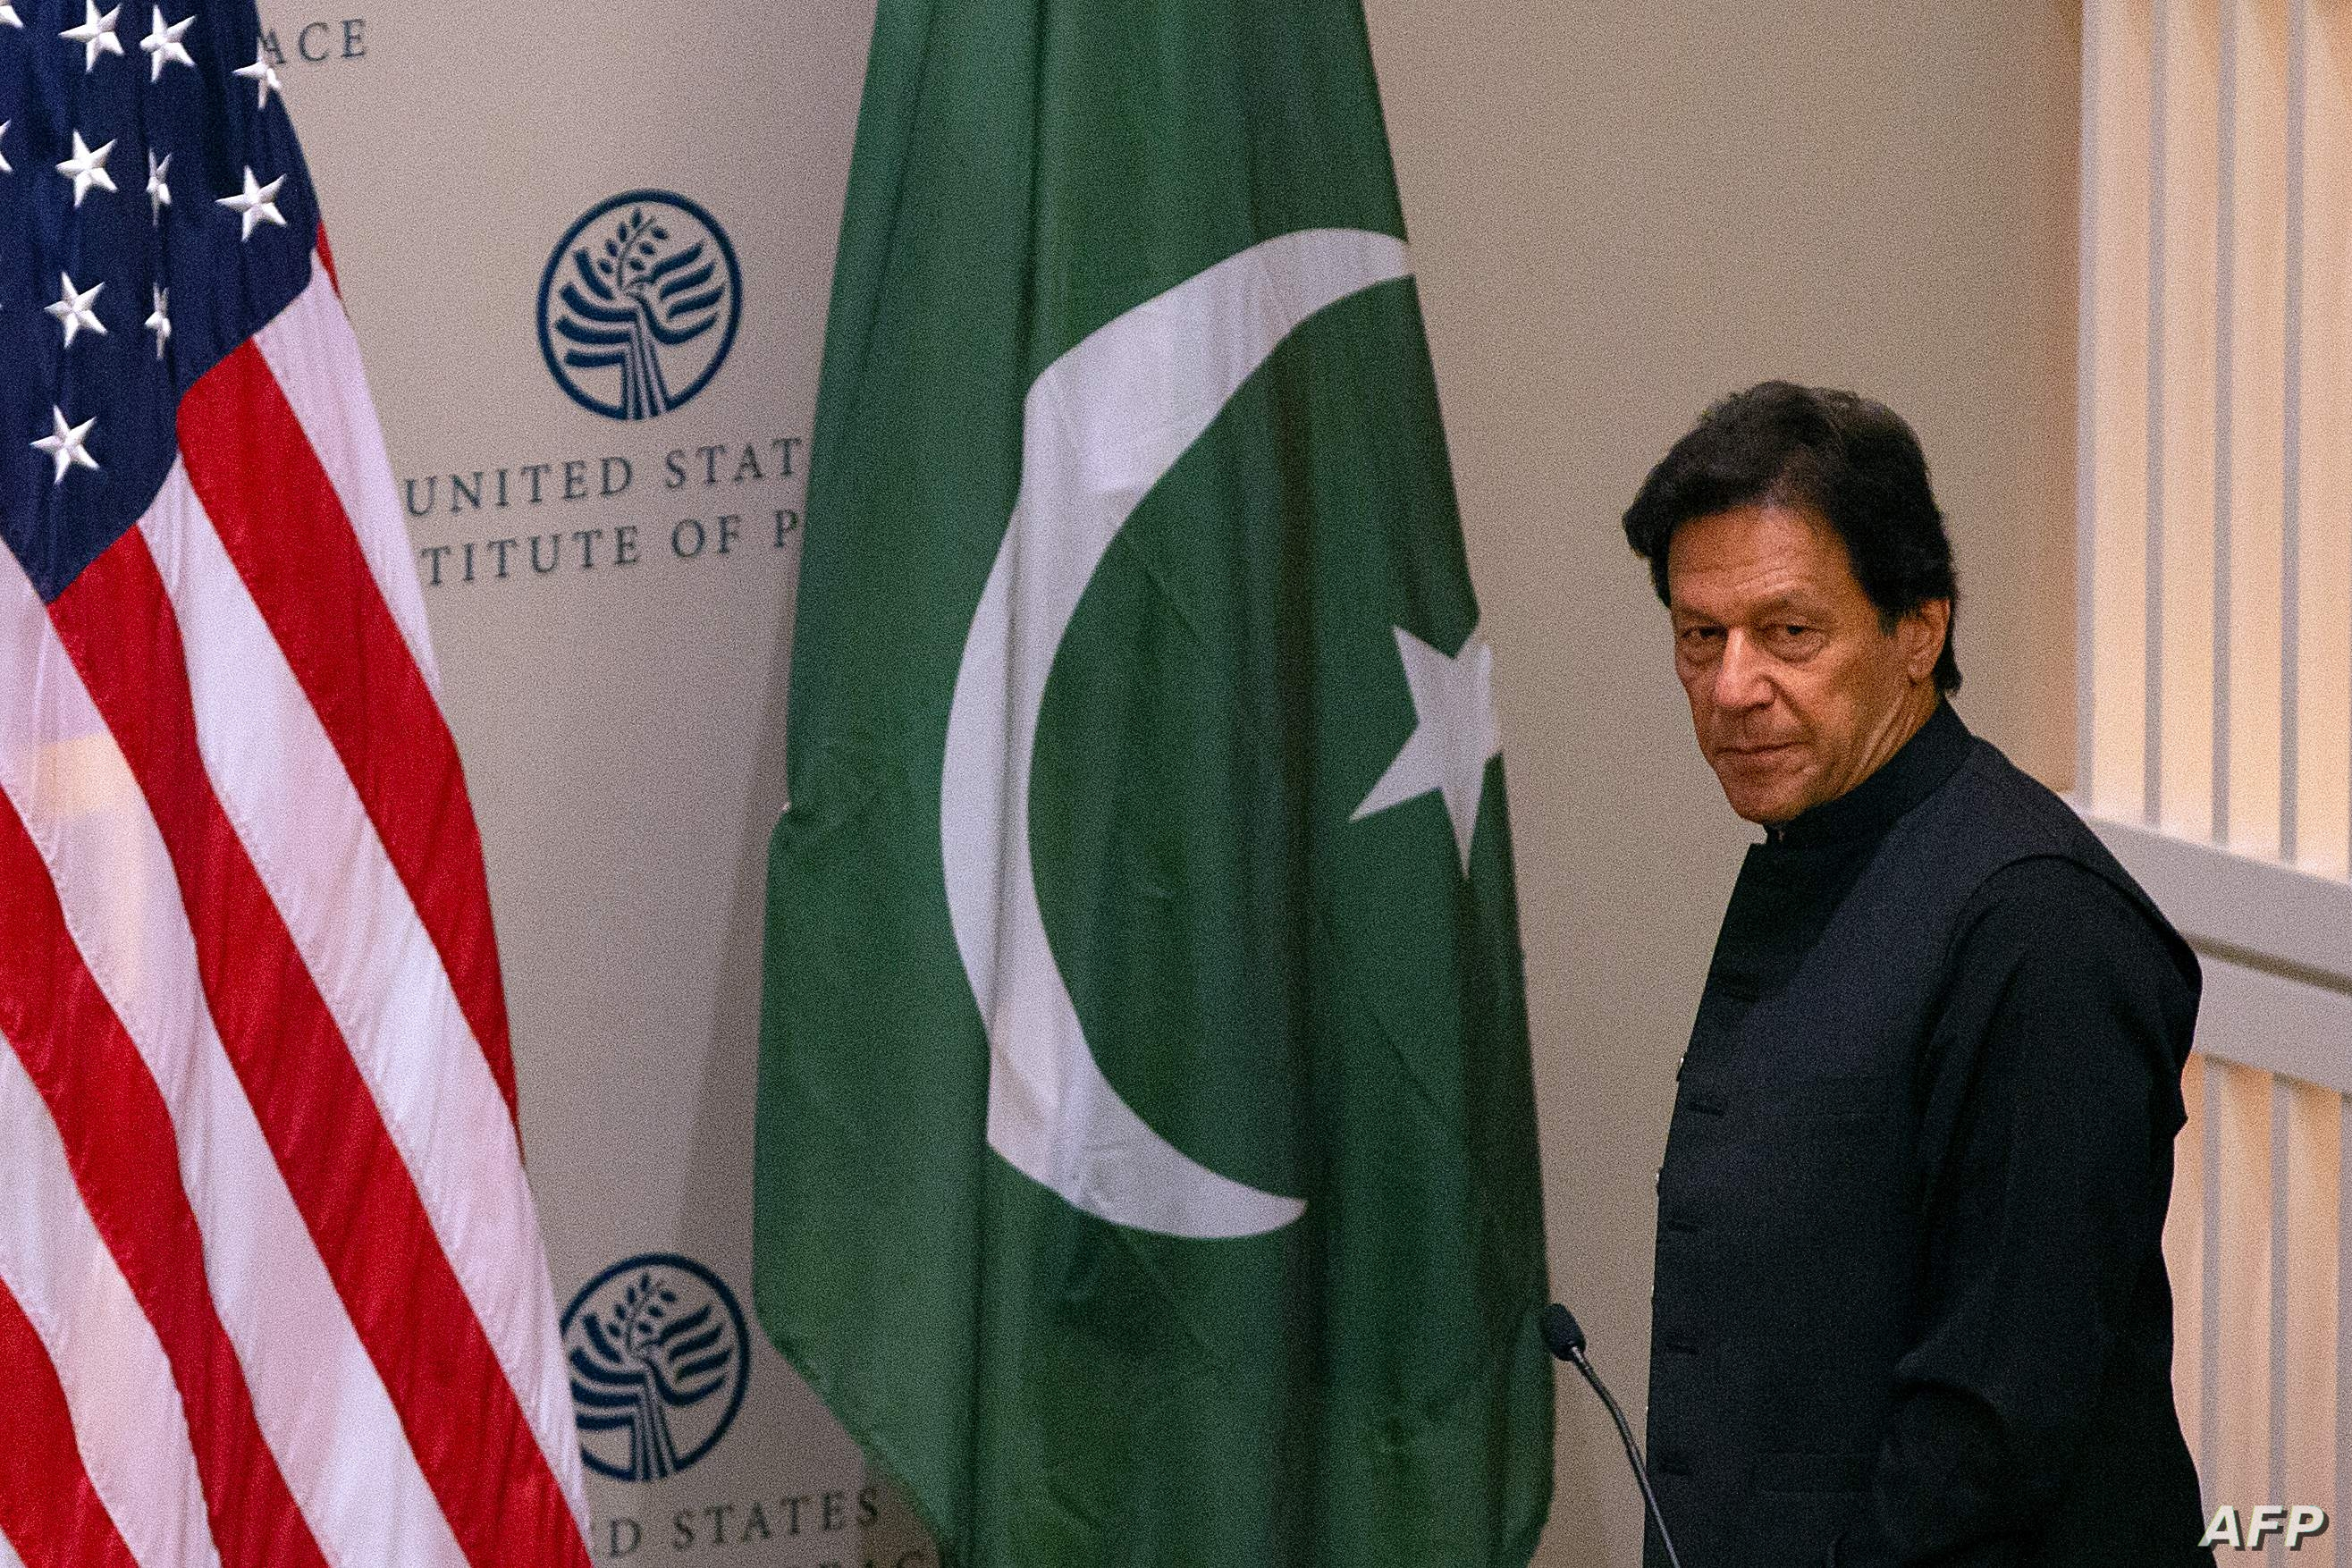 Pakistani Prime Minister Imran Khan arrives to speak at the United States Institute of Peace (USIP) in Washington, DC, on July 23, 2019. / AFP / Alastair Pike